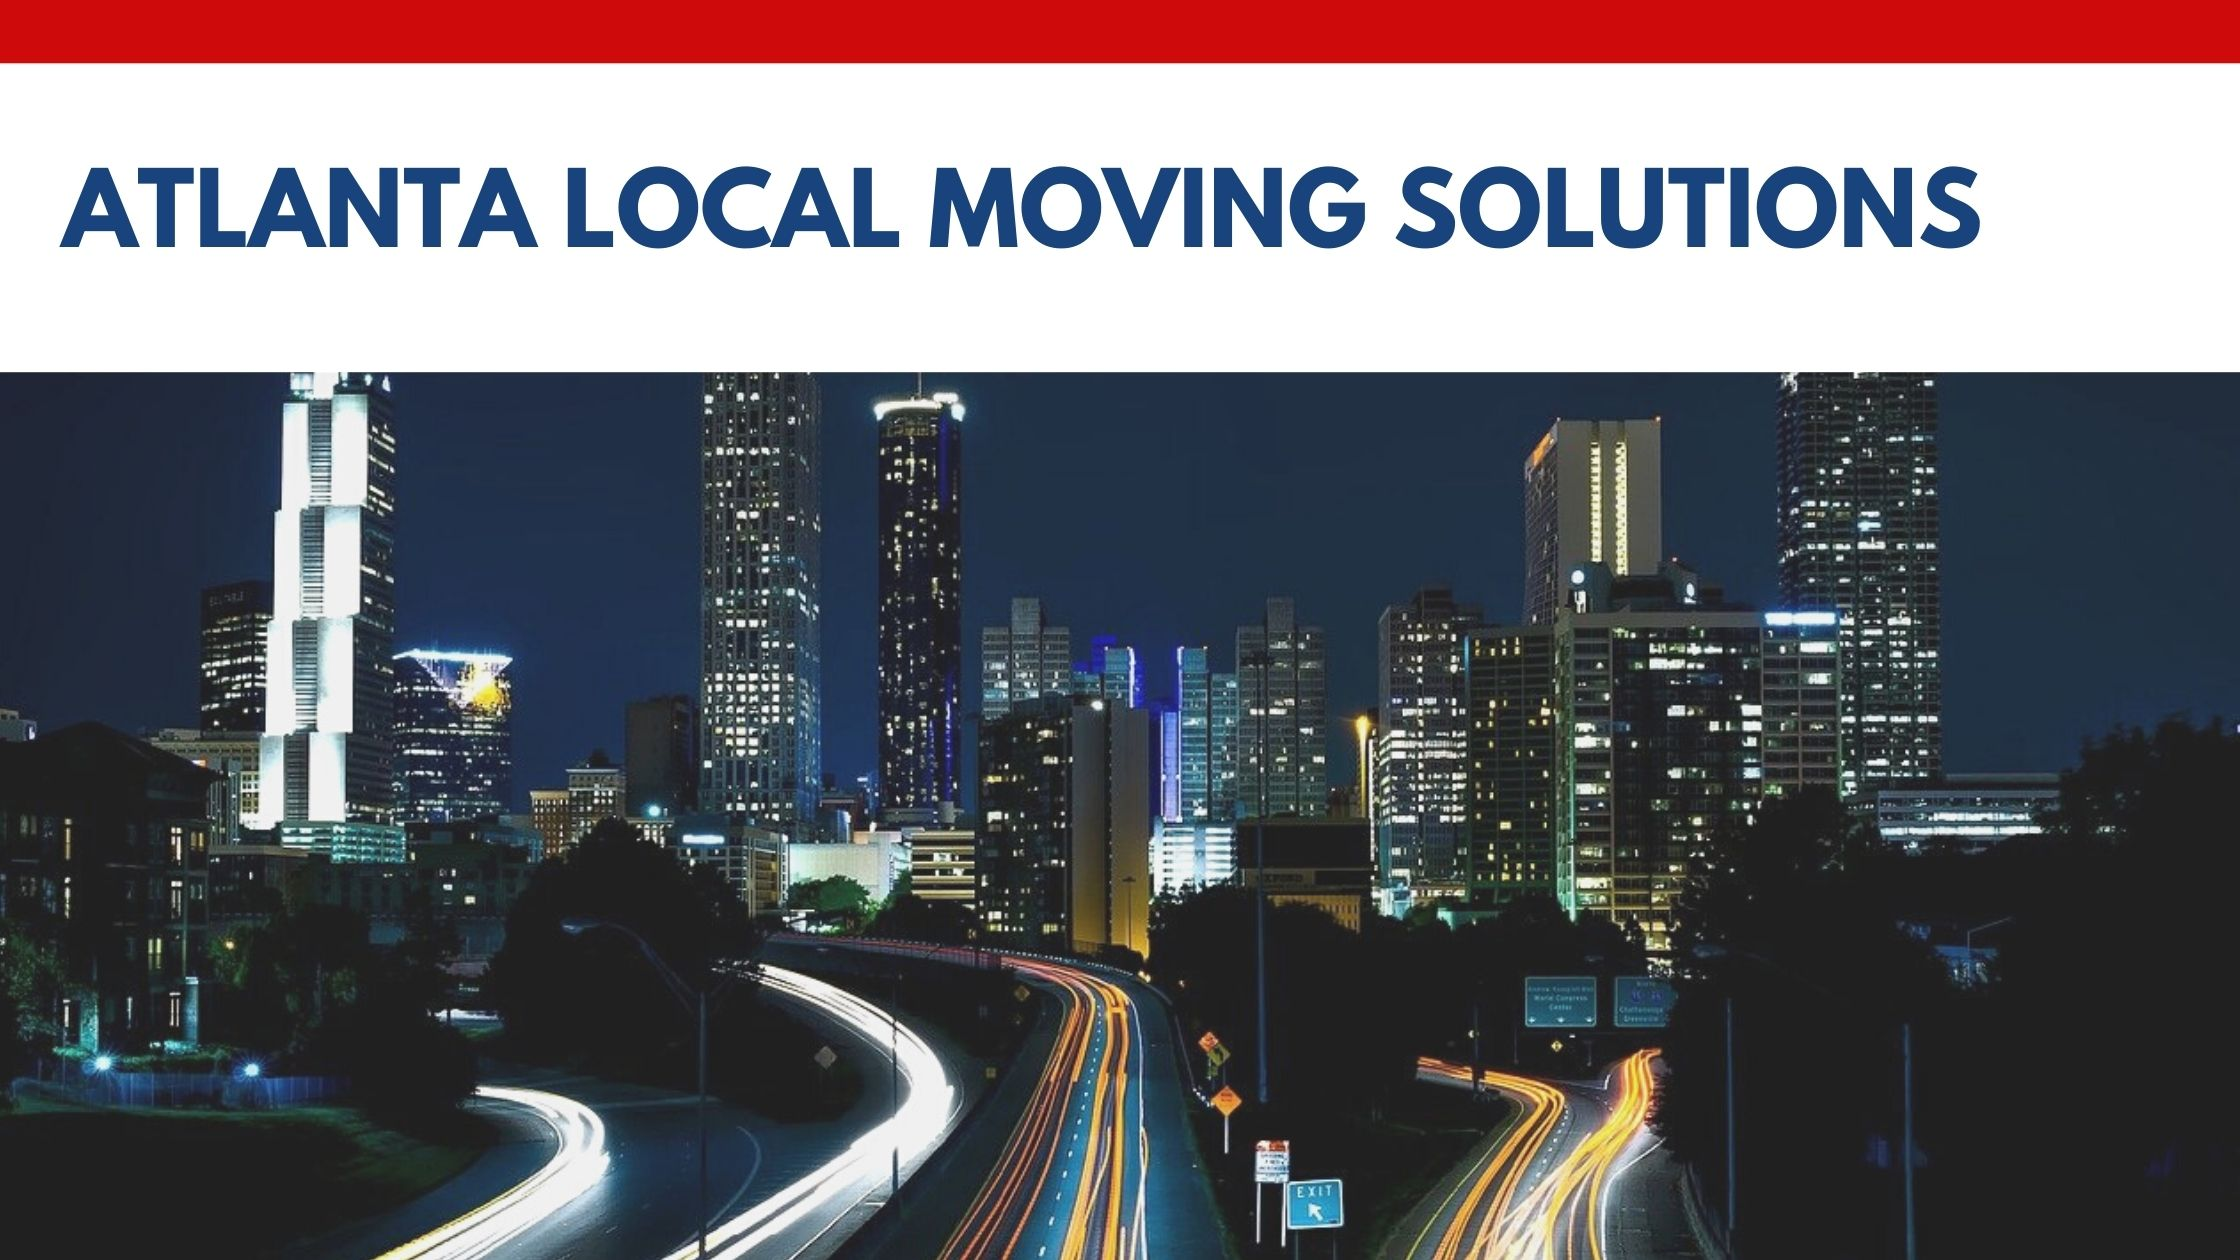 Atlanta Local Moving Solutions